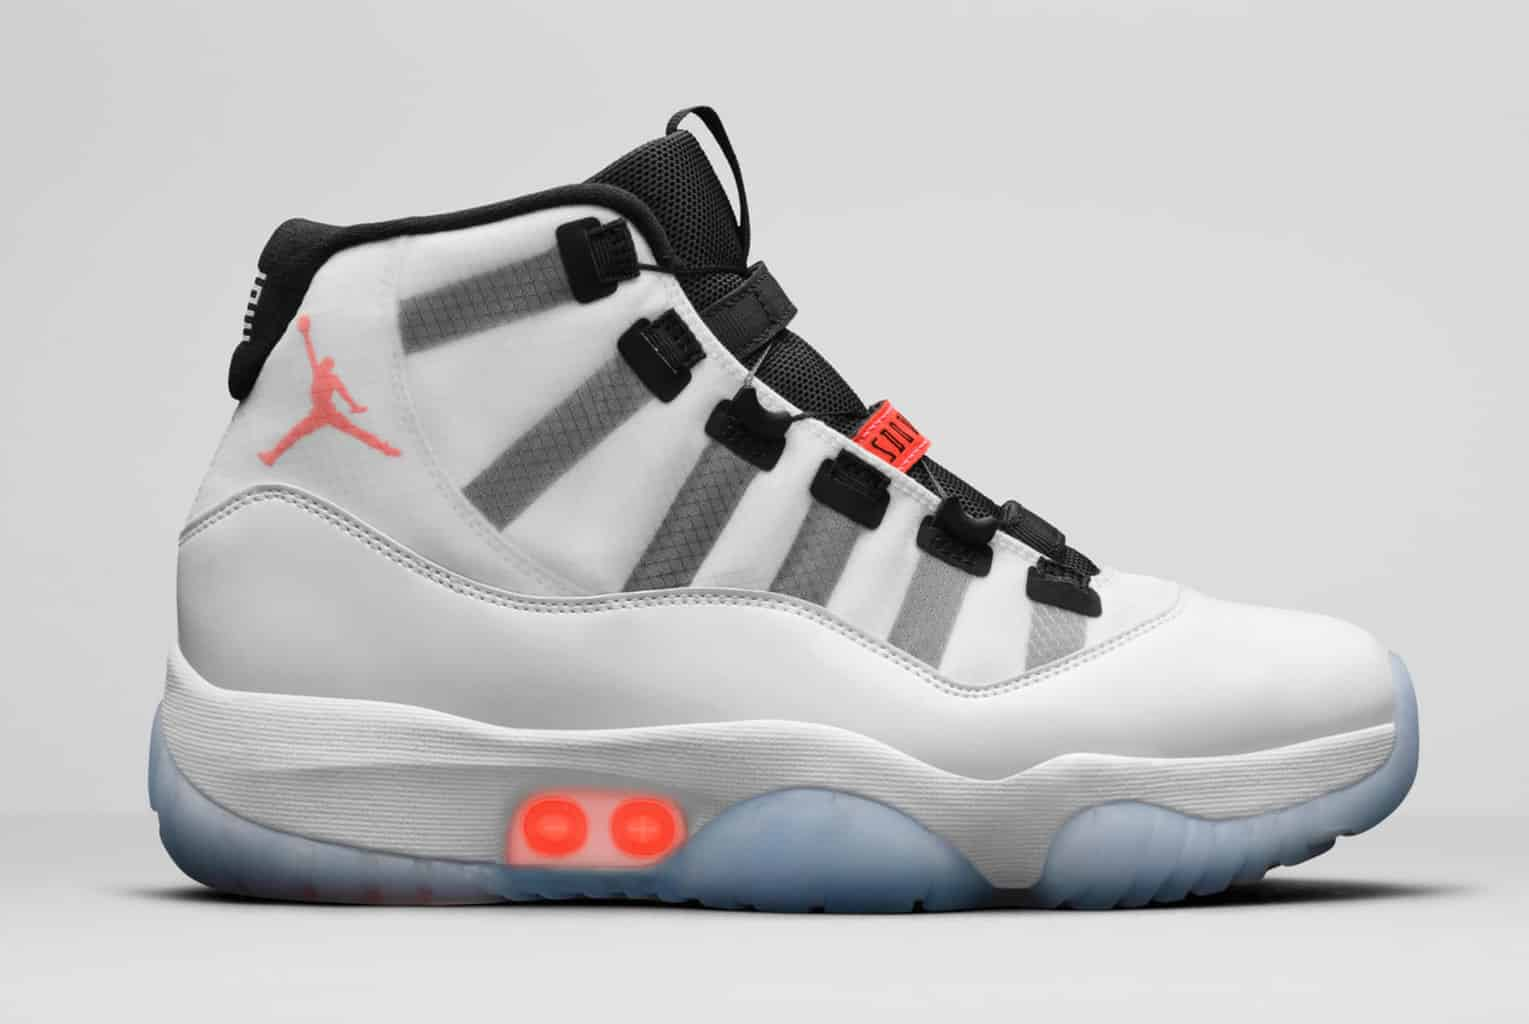 December Will See Release Of Nike Air Jordan 11 With Adapt Technology